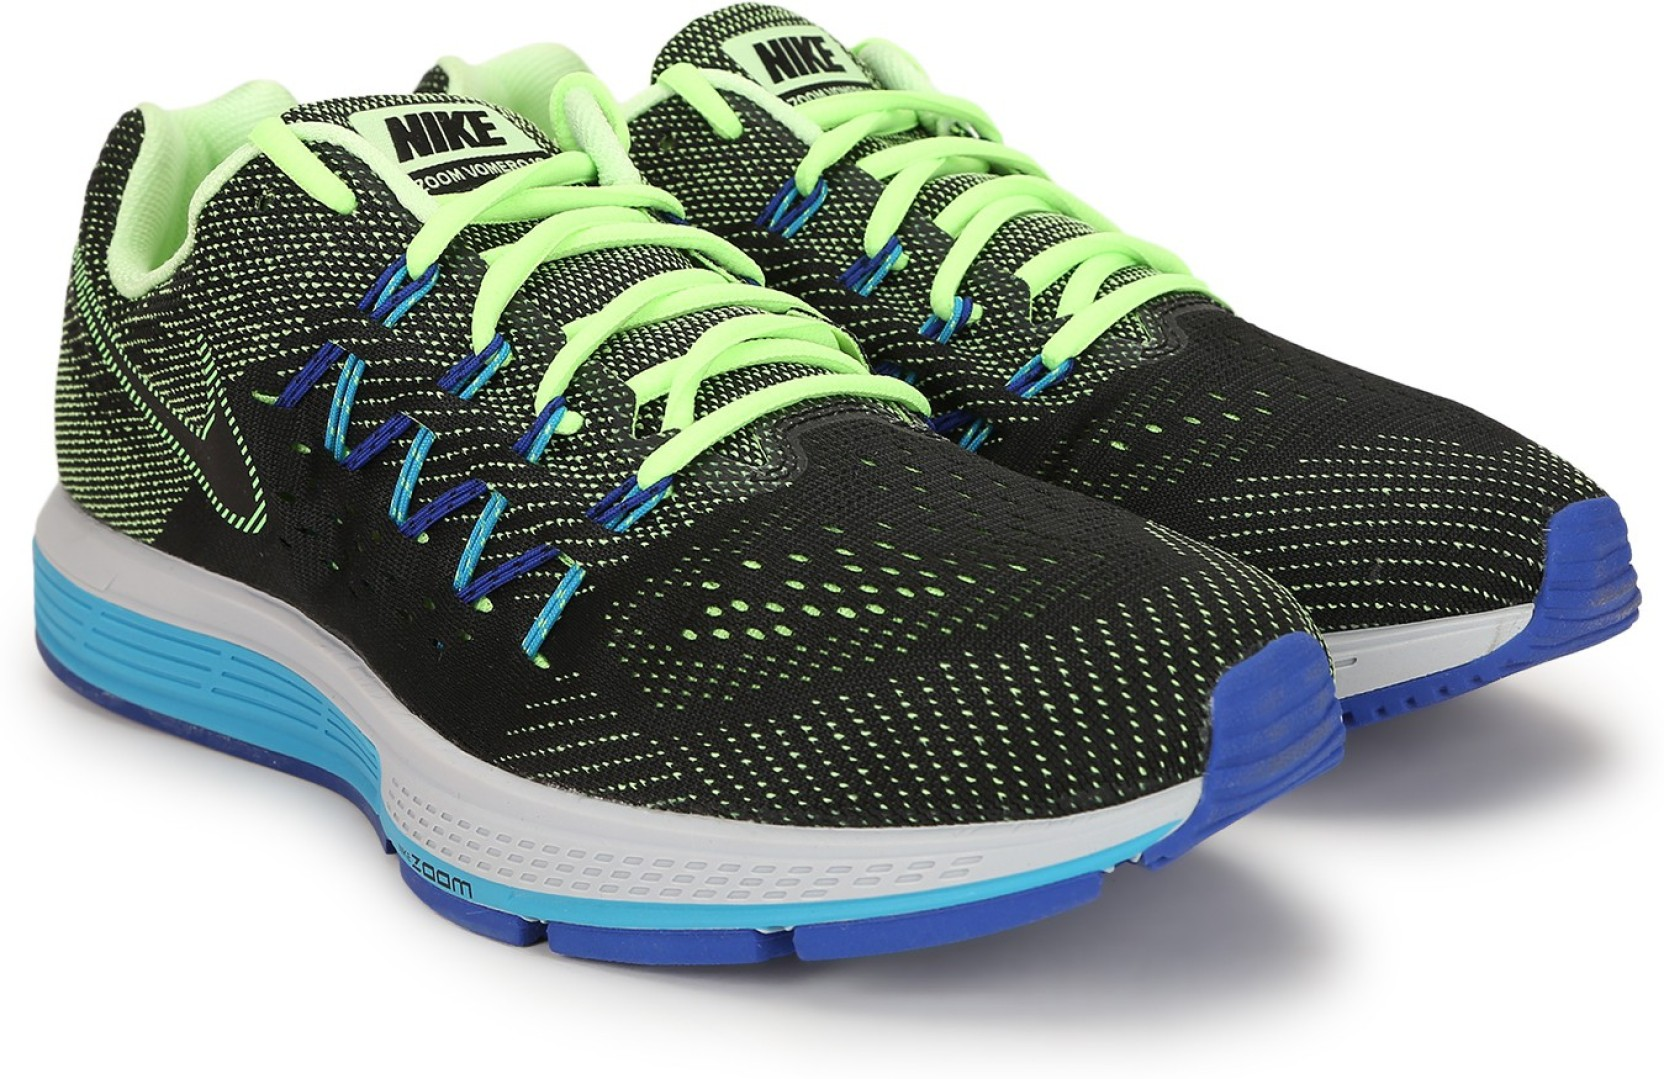 15fc8c4c7263 Nike AIR ZOOM VOMERO 10 Running Shoes For Men - Buy Ghost Green ...